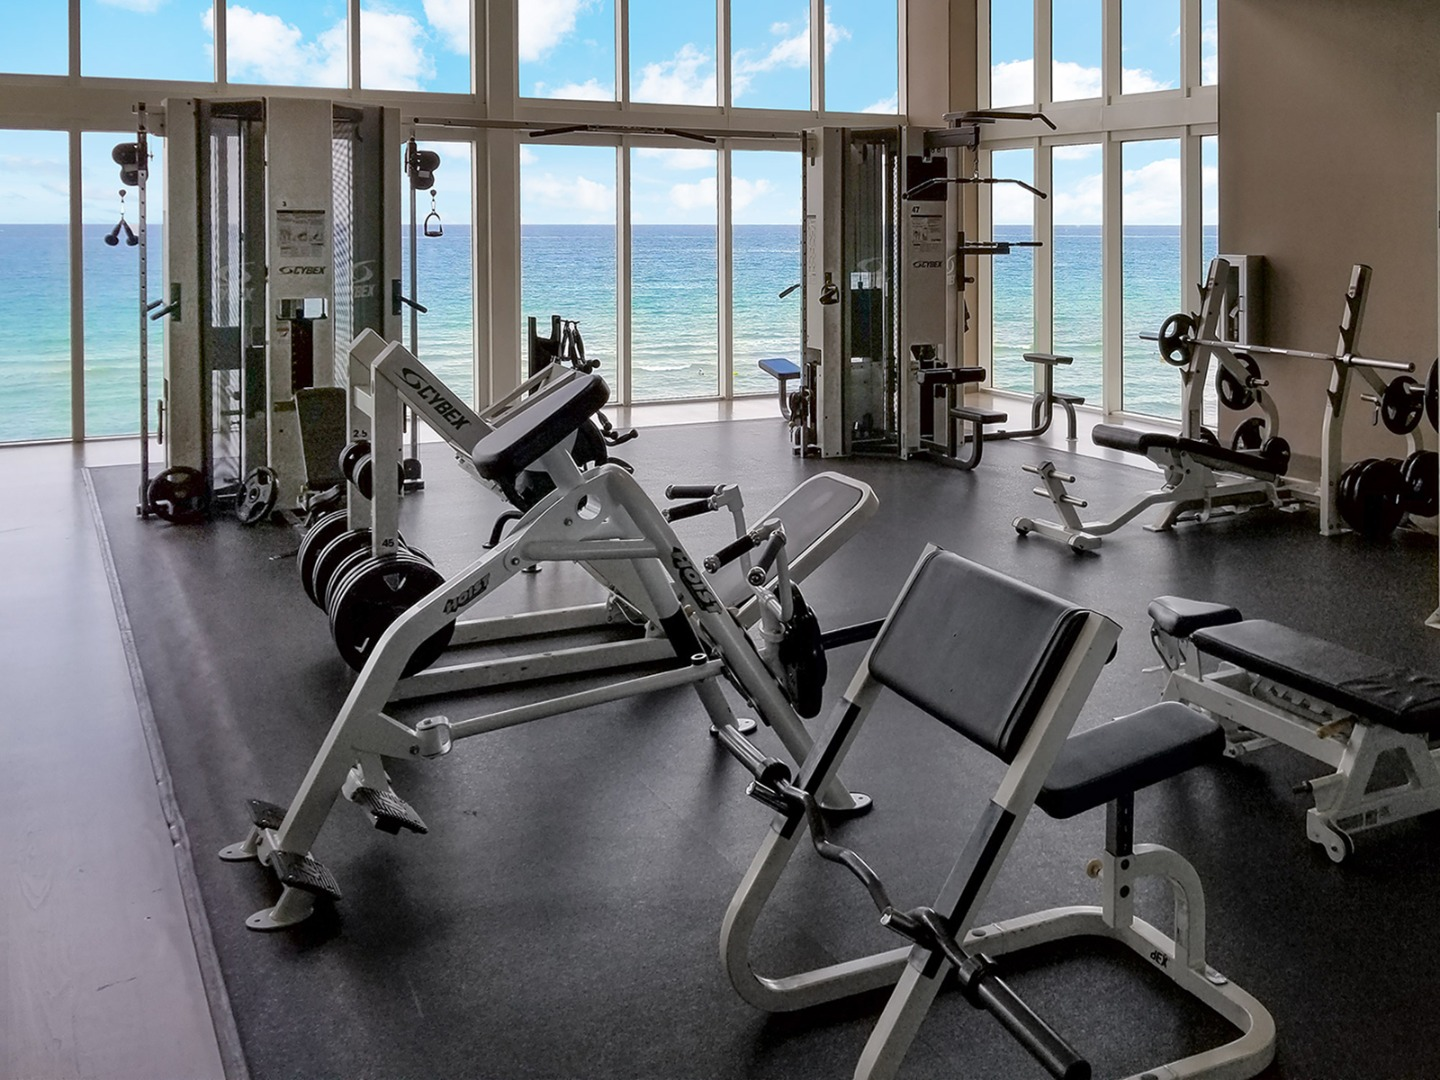 BEACH CLUB SPA & FITNESS CENTER image 3